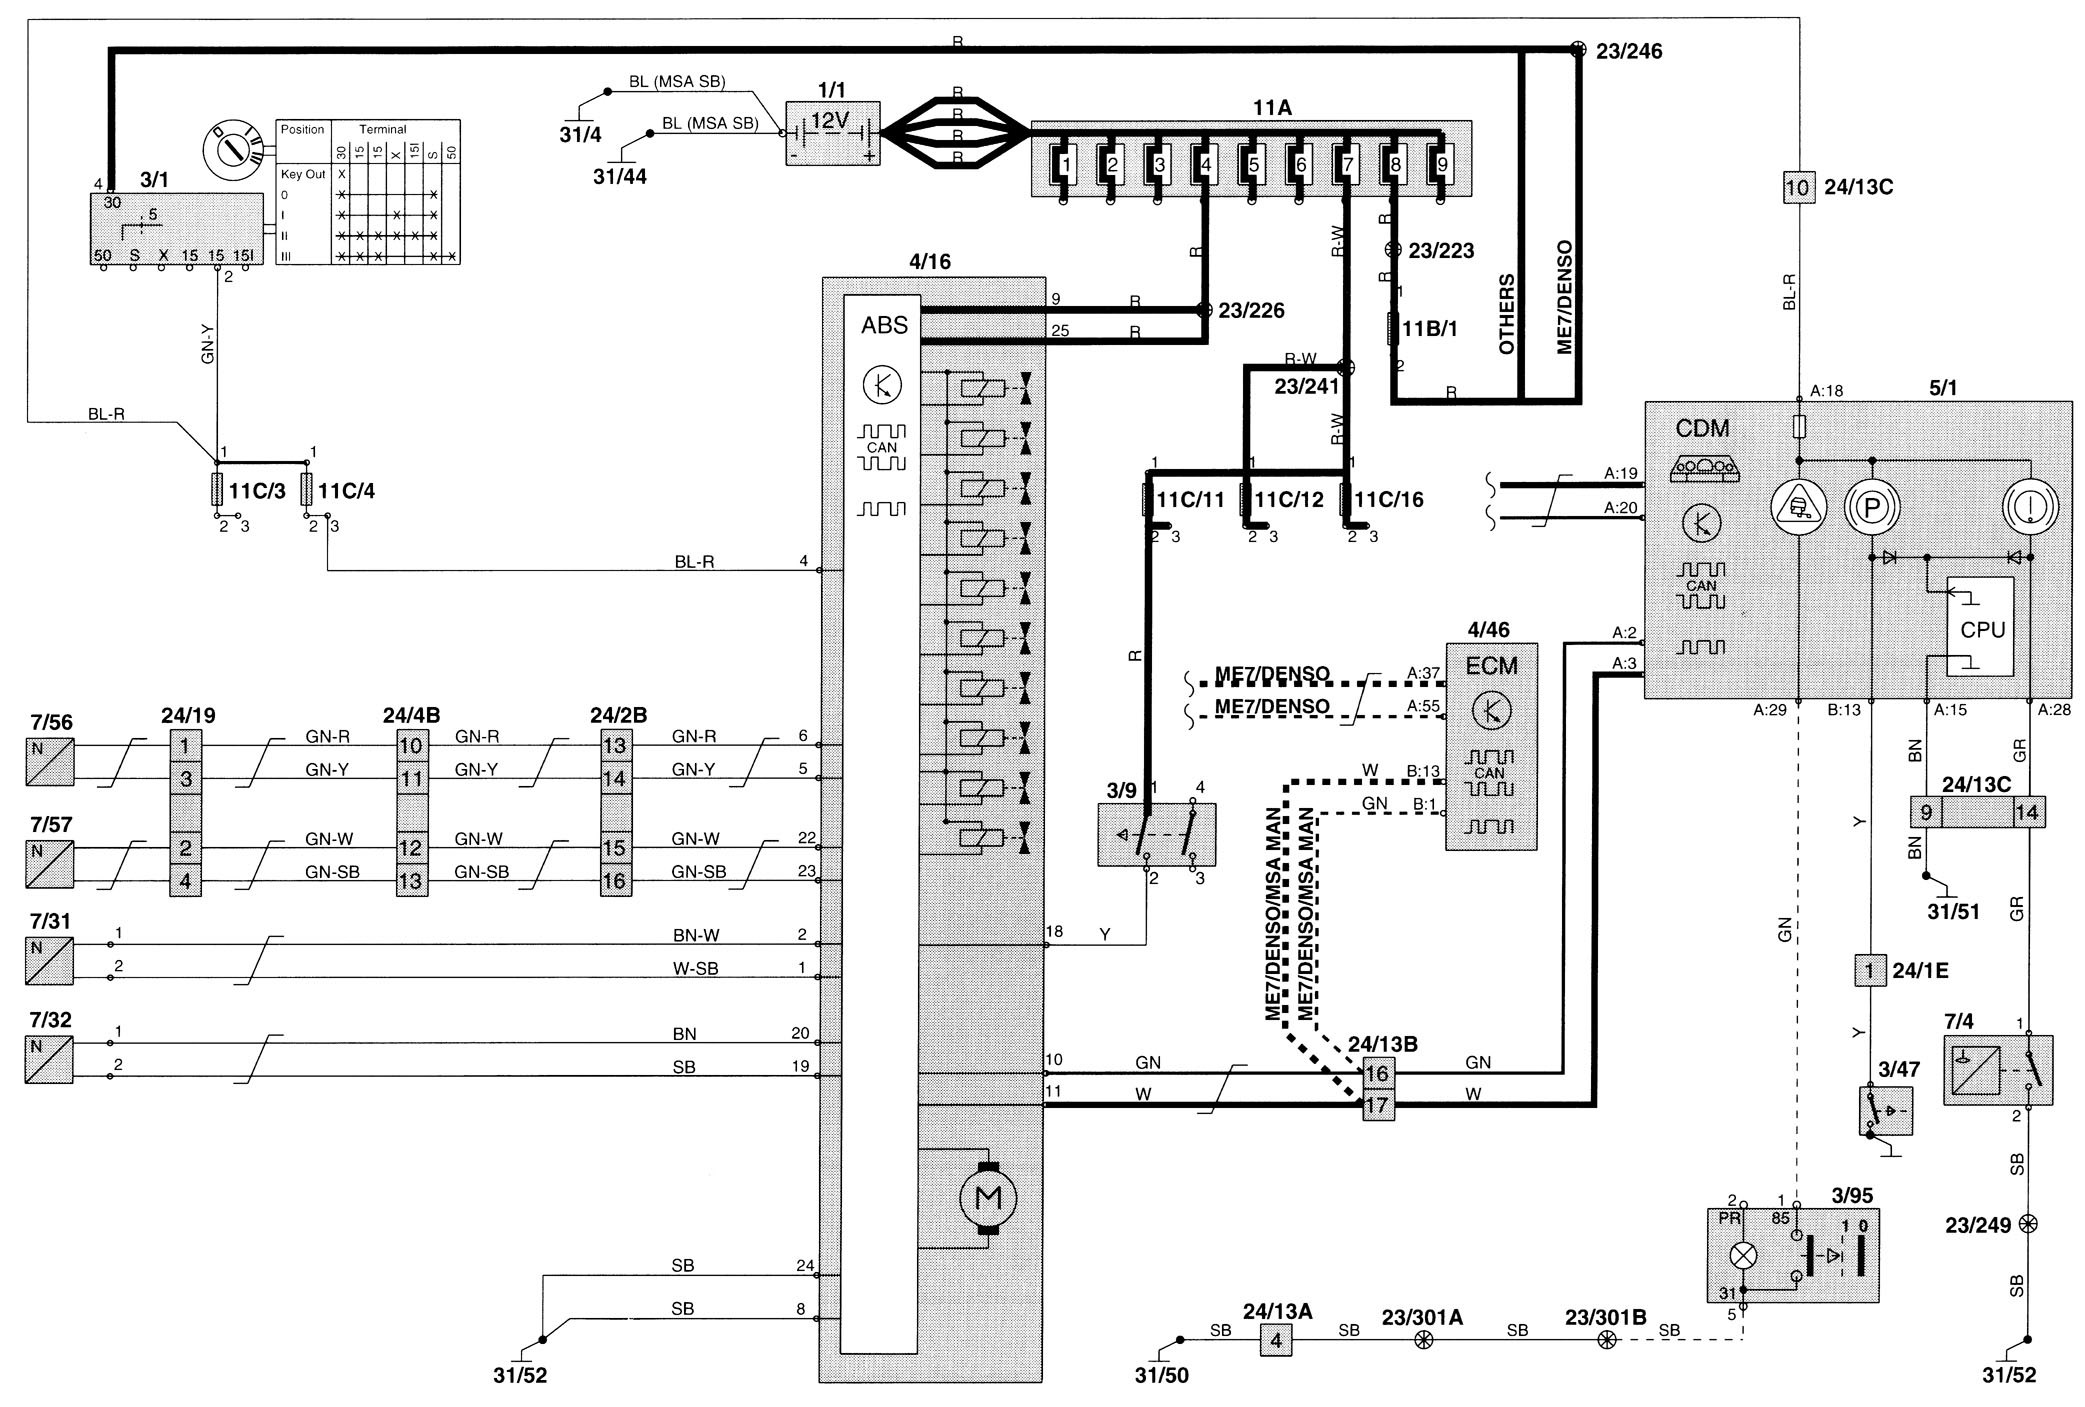 volvo c70 wiring diagram brake control 1999 c70 wiring diagram 1969 honda ct90 wiring diagram \u2022 wiring volvo amazon wiring diagram at soozxer.org